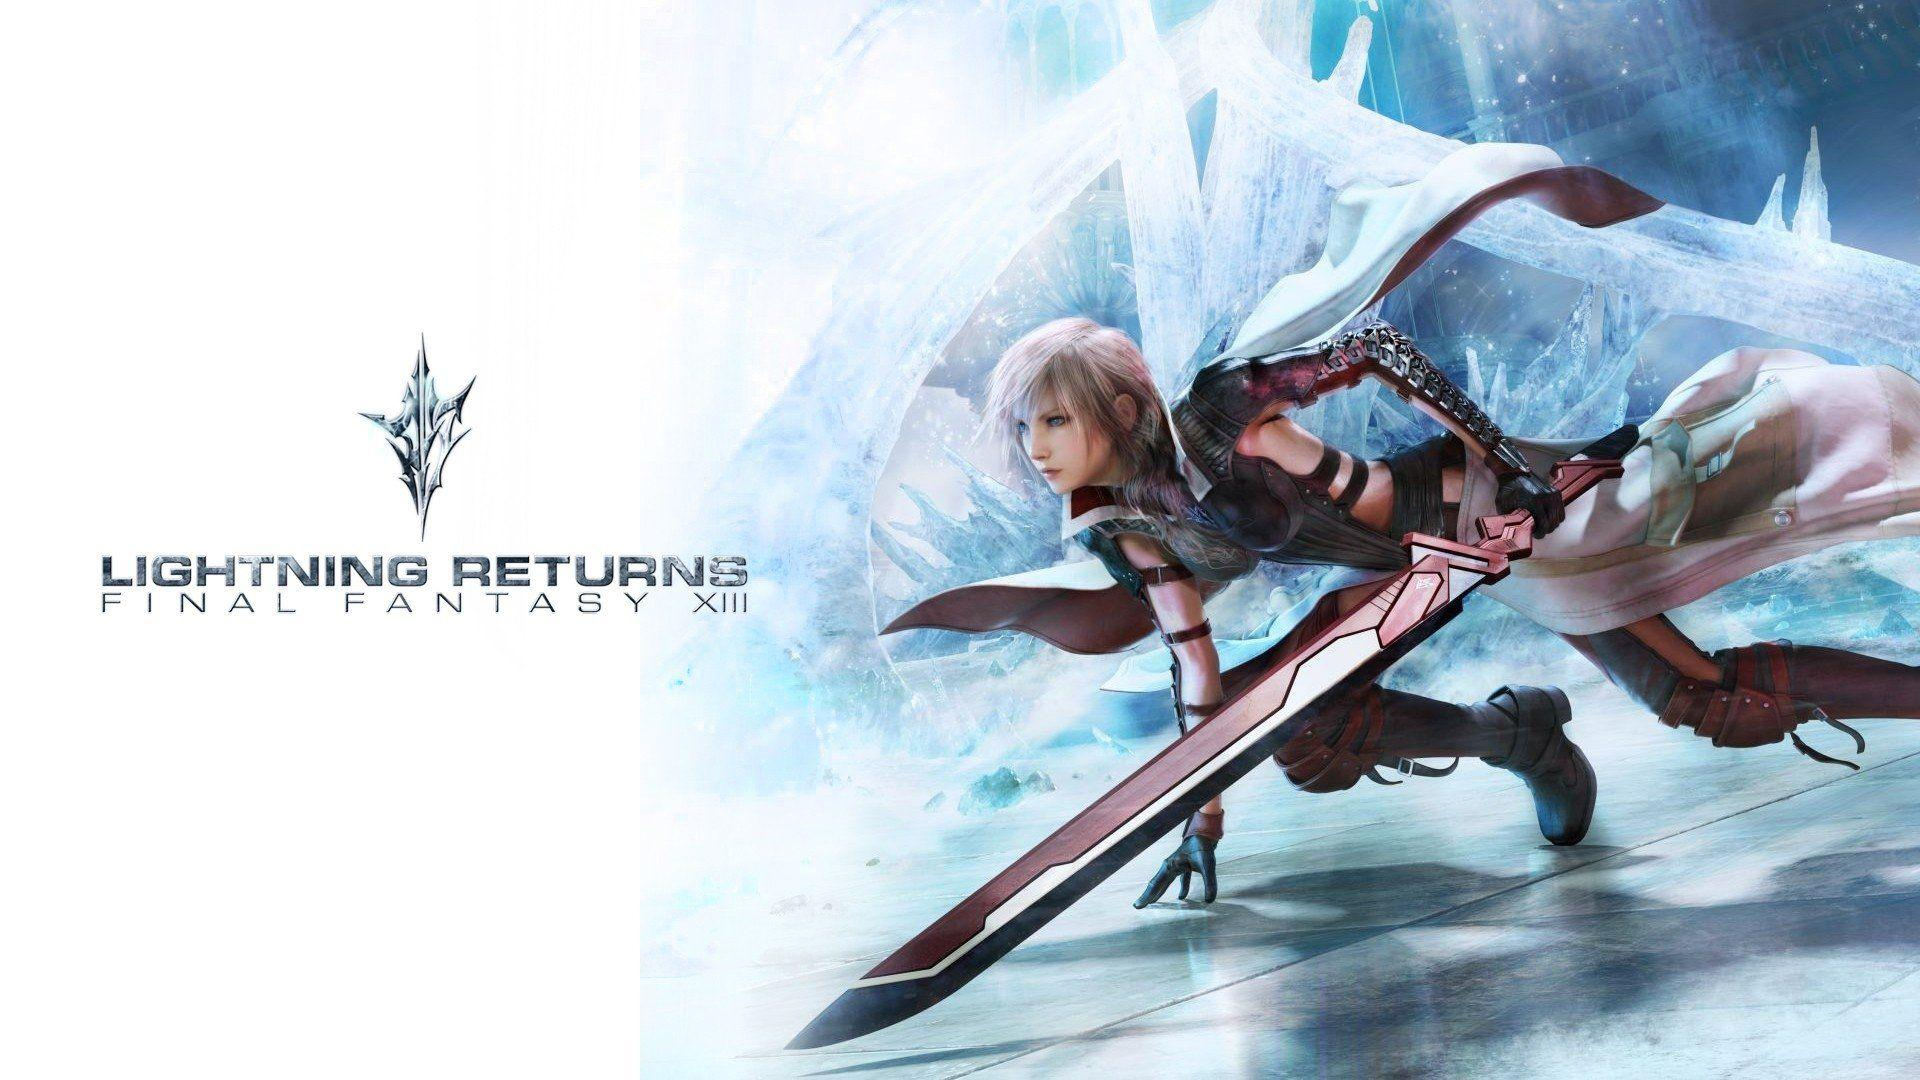 Lightning returns final fantasy xiii wallpapers wallpaper cave 14 lightning returns final fantasy xiii hd wallpapers voltagebd Image collections